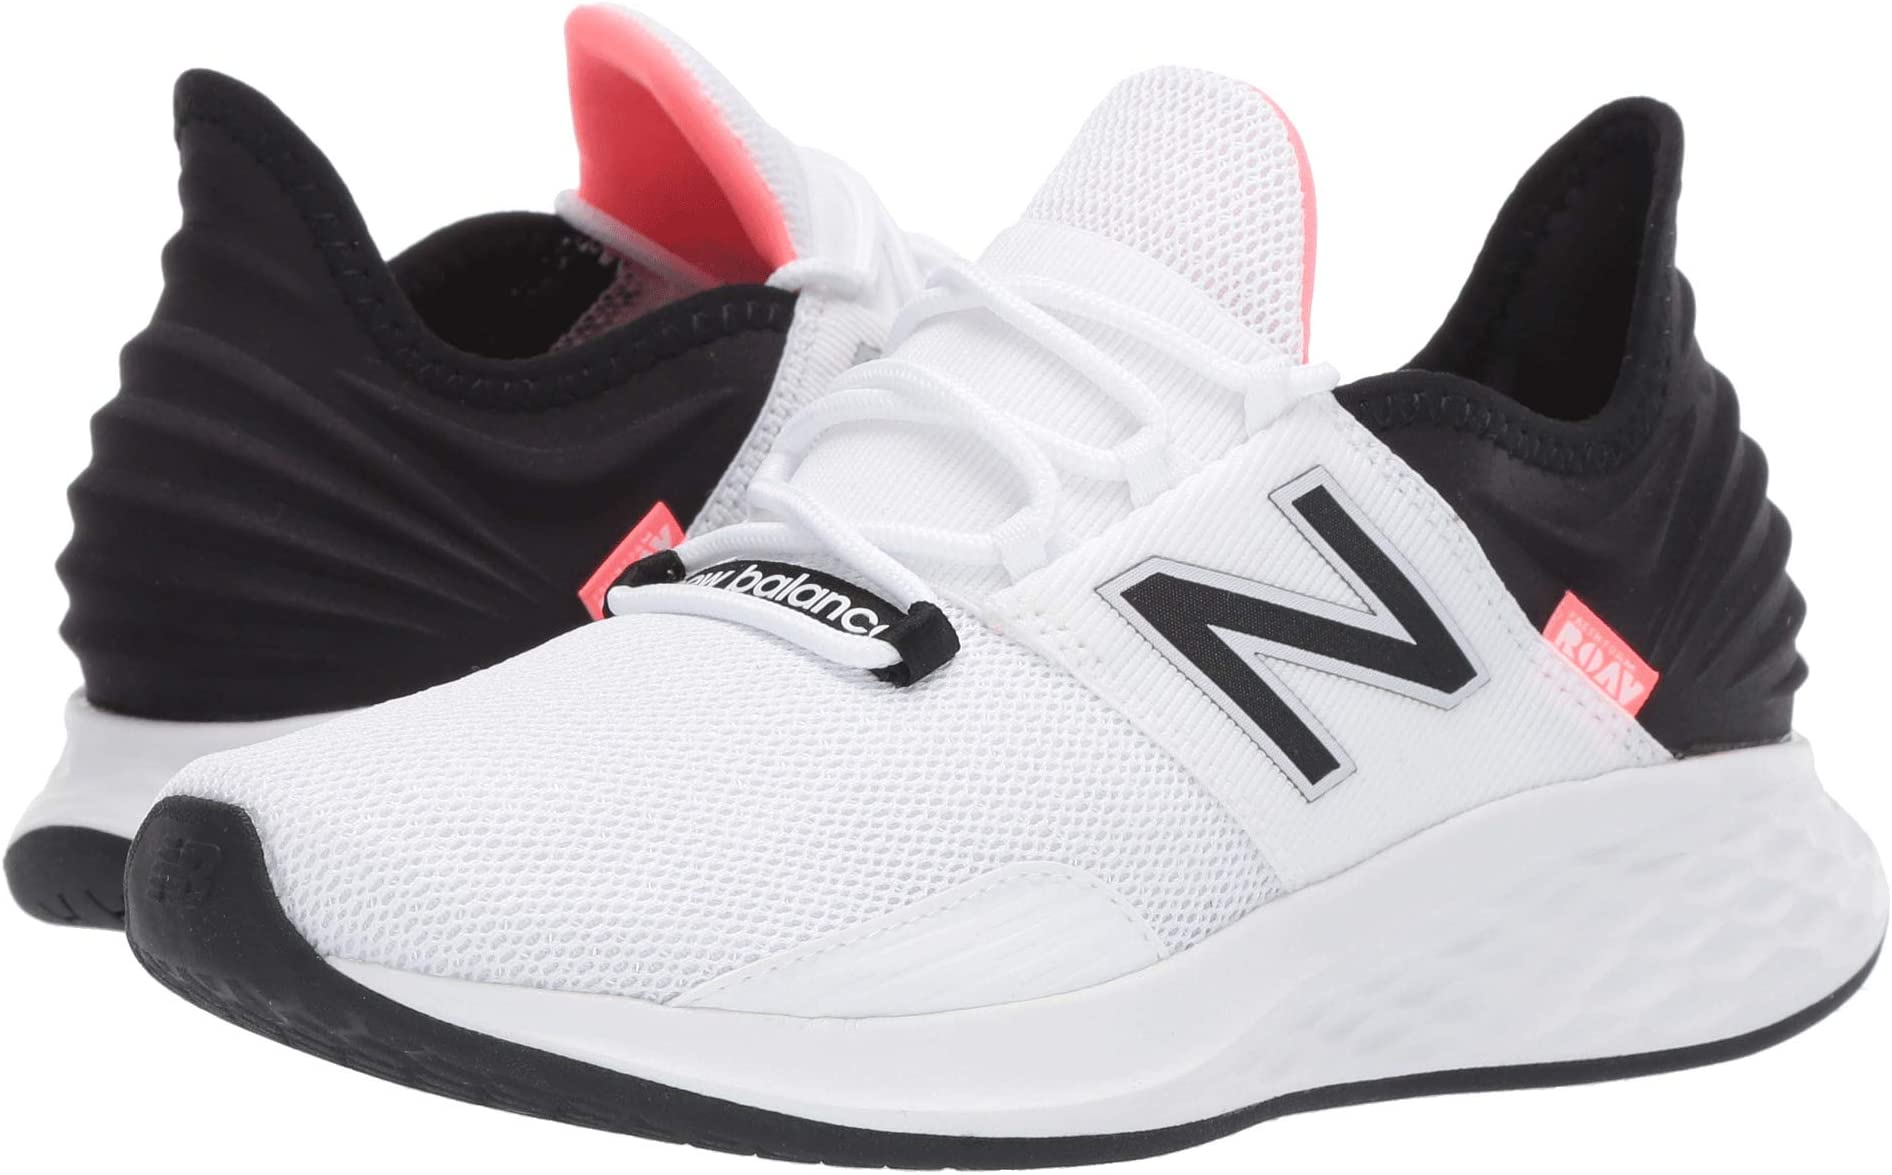 613c88fba840a New Balance Shoes, Clothing, Activewear, Socks | Zappos.com